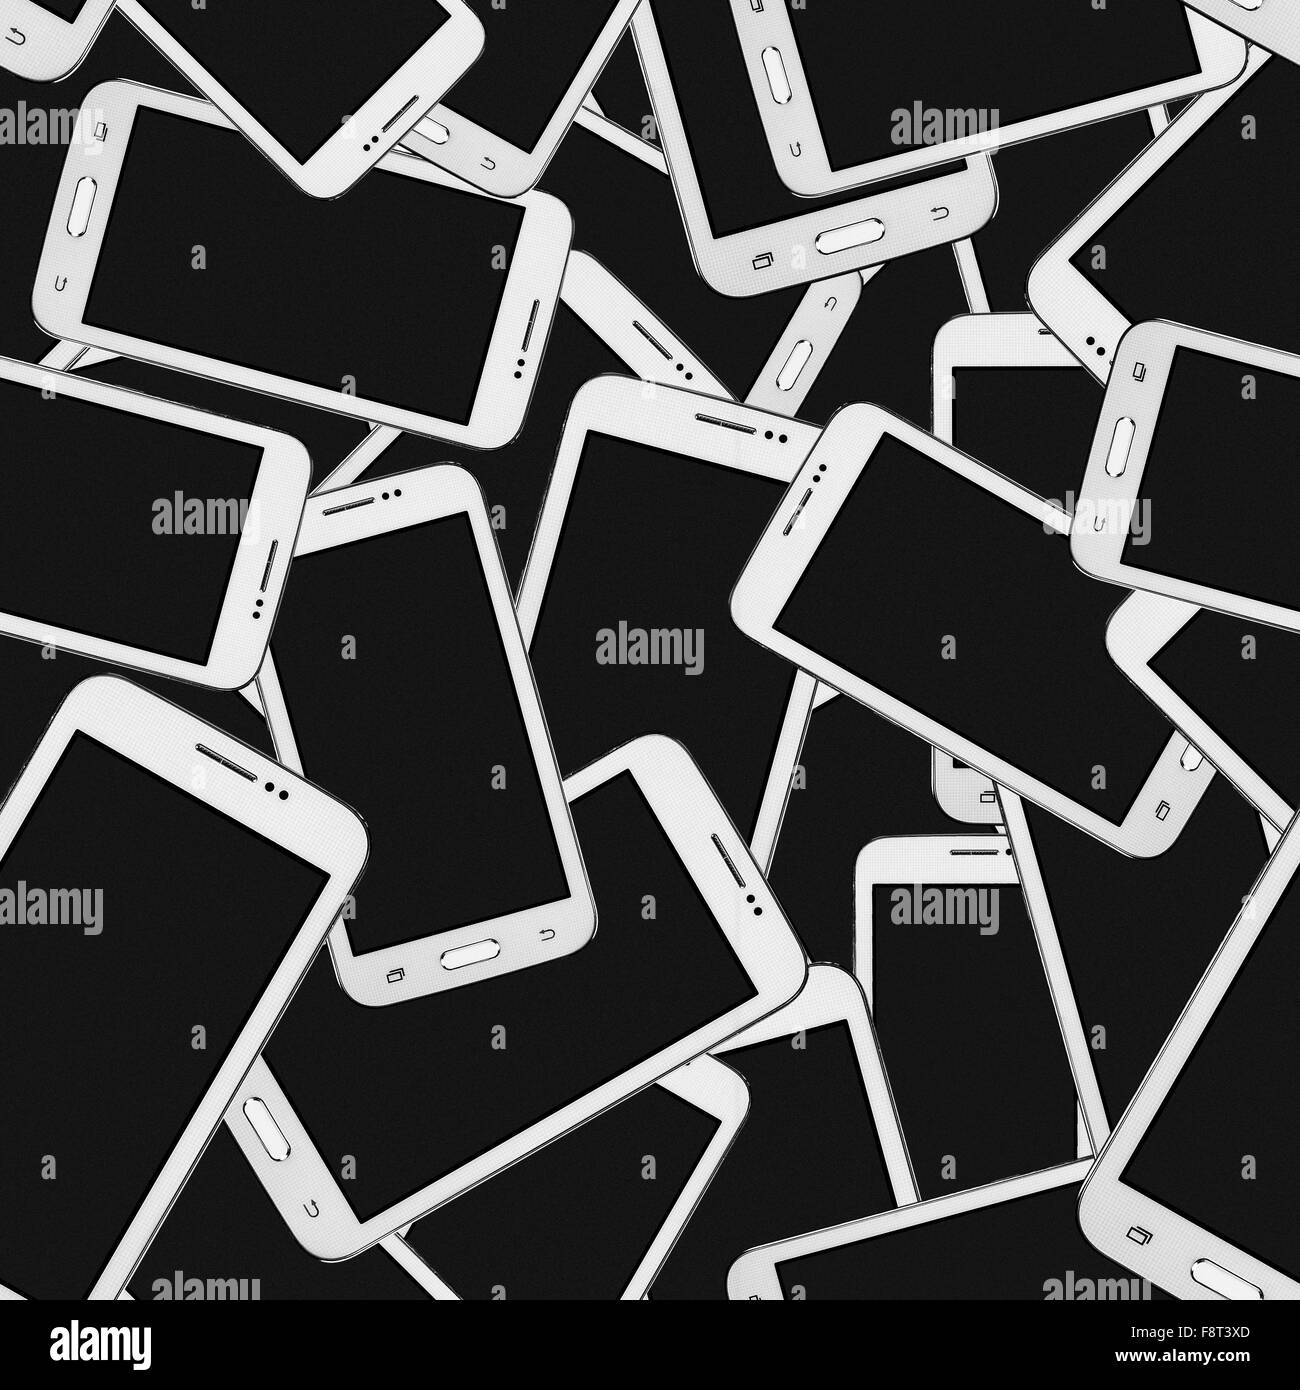 Modern mobile phone set abstract seamless geometrical patterns on a black background. - Stock Image